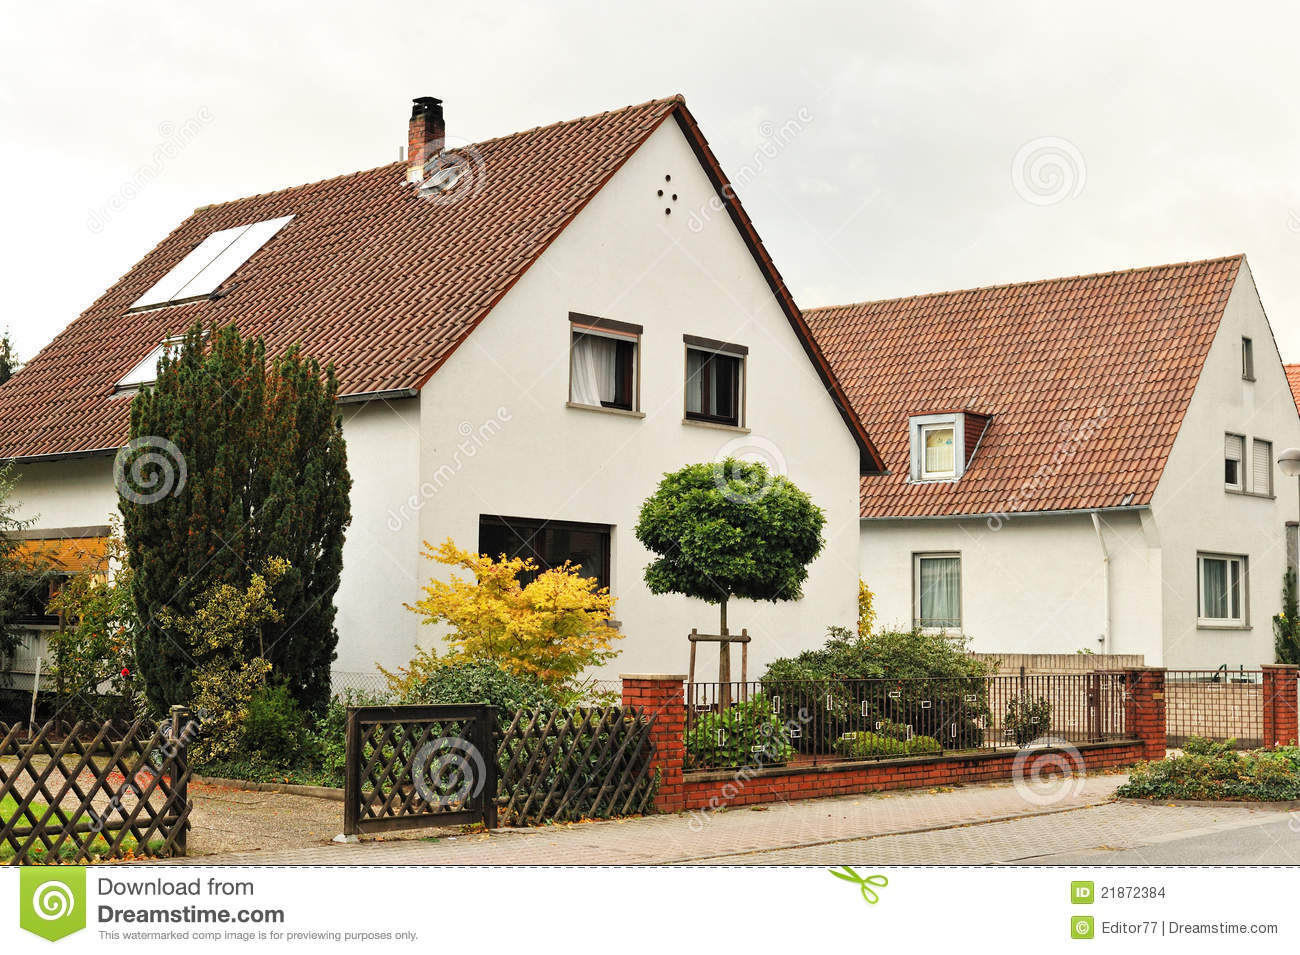 House with small garden in front of it stock images - Small garden front of house ...